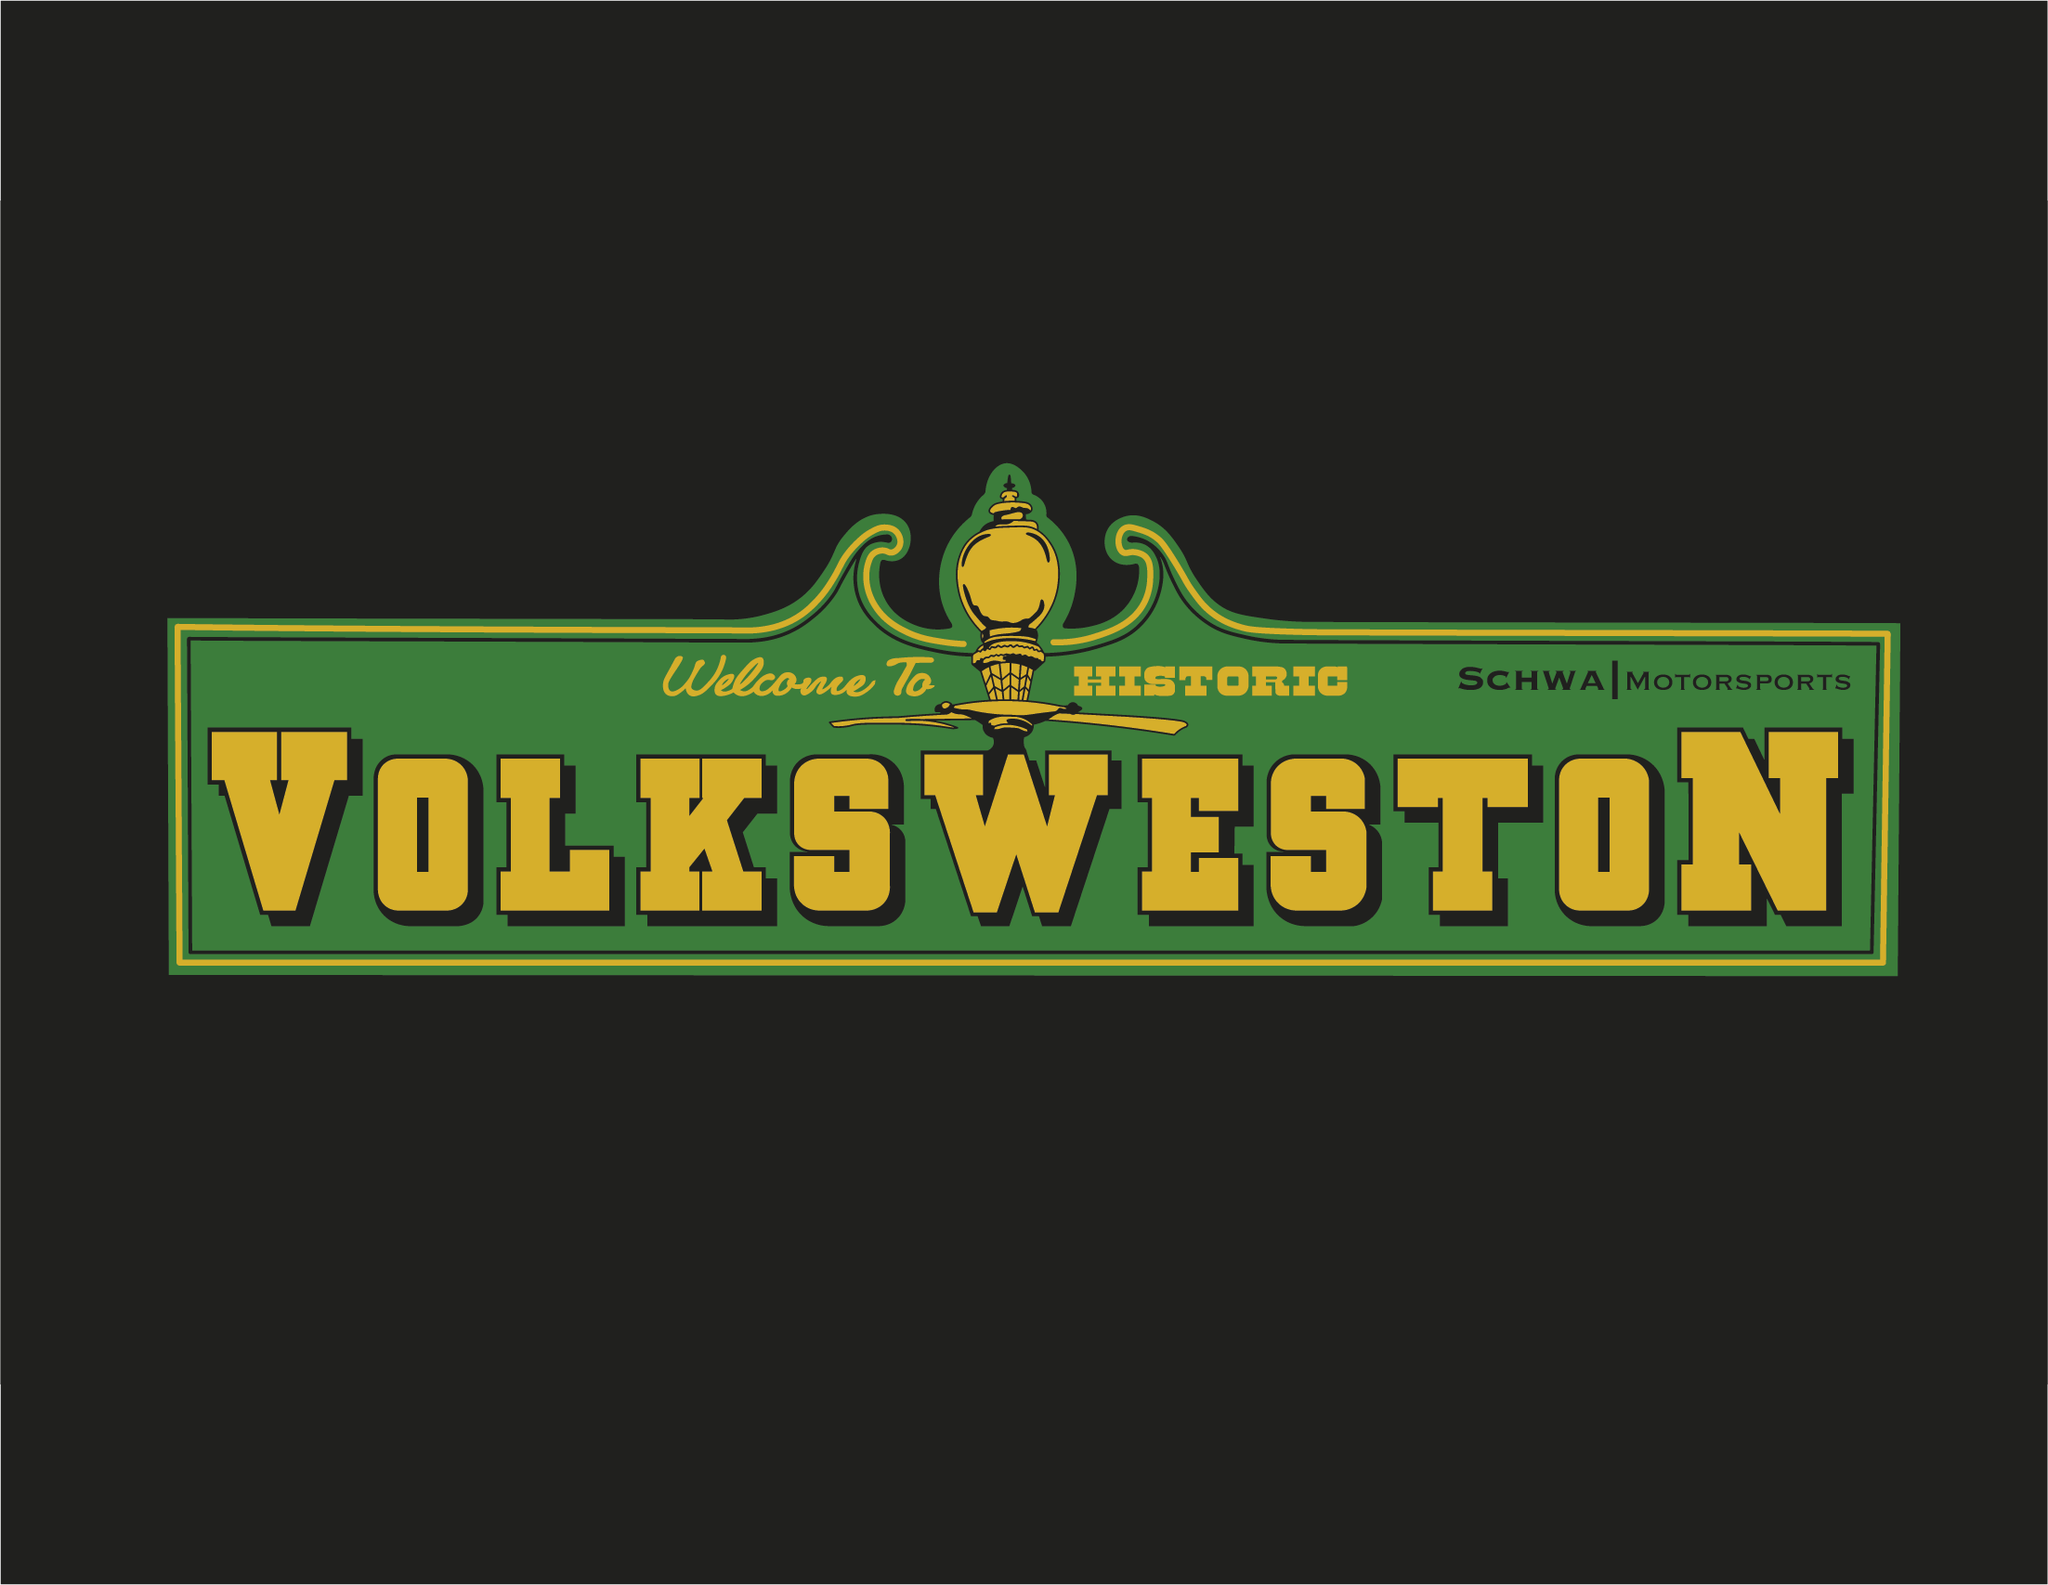 VolksWeston Show Welcome Sign Multi Color T-Shirt